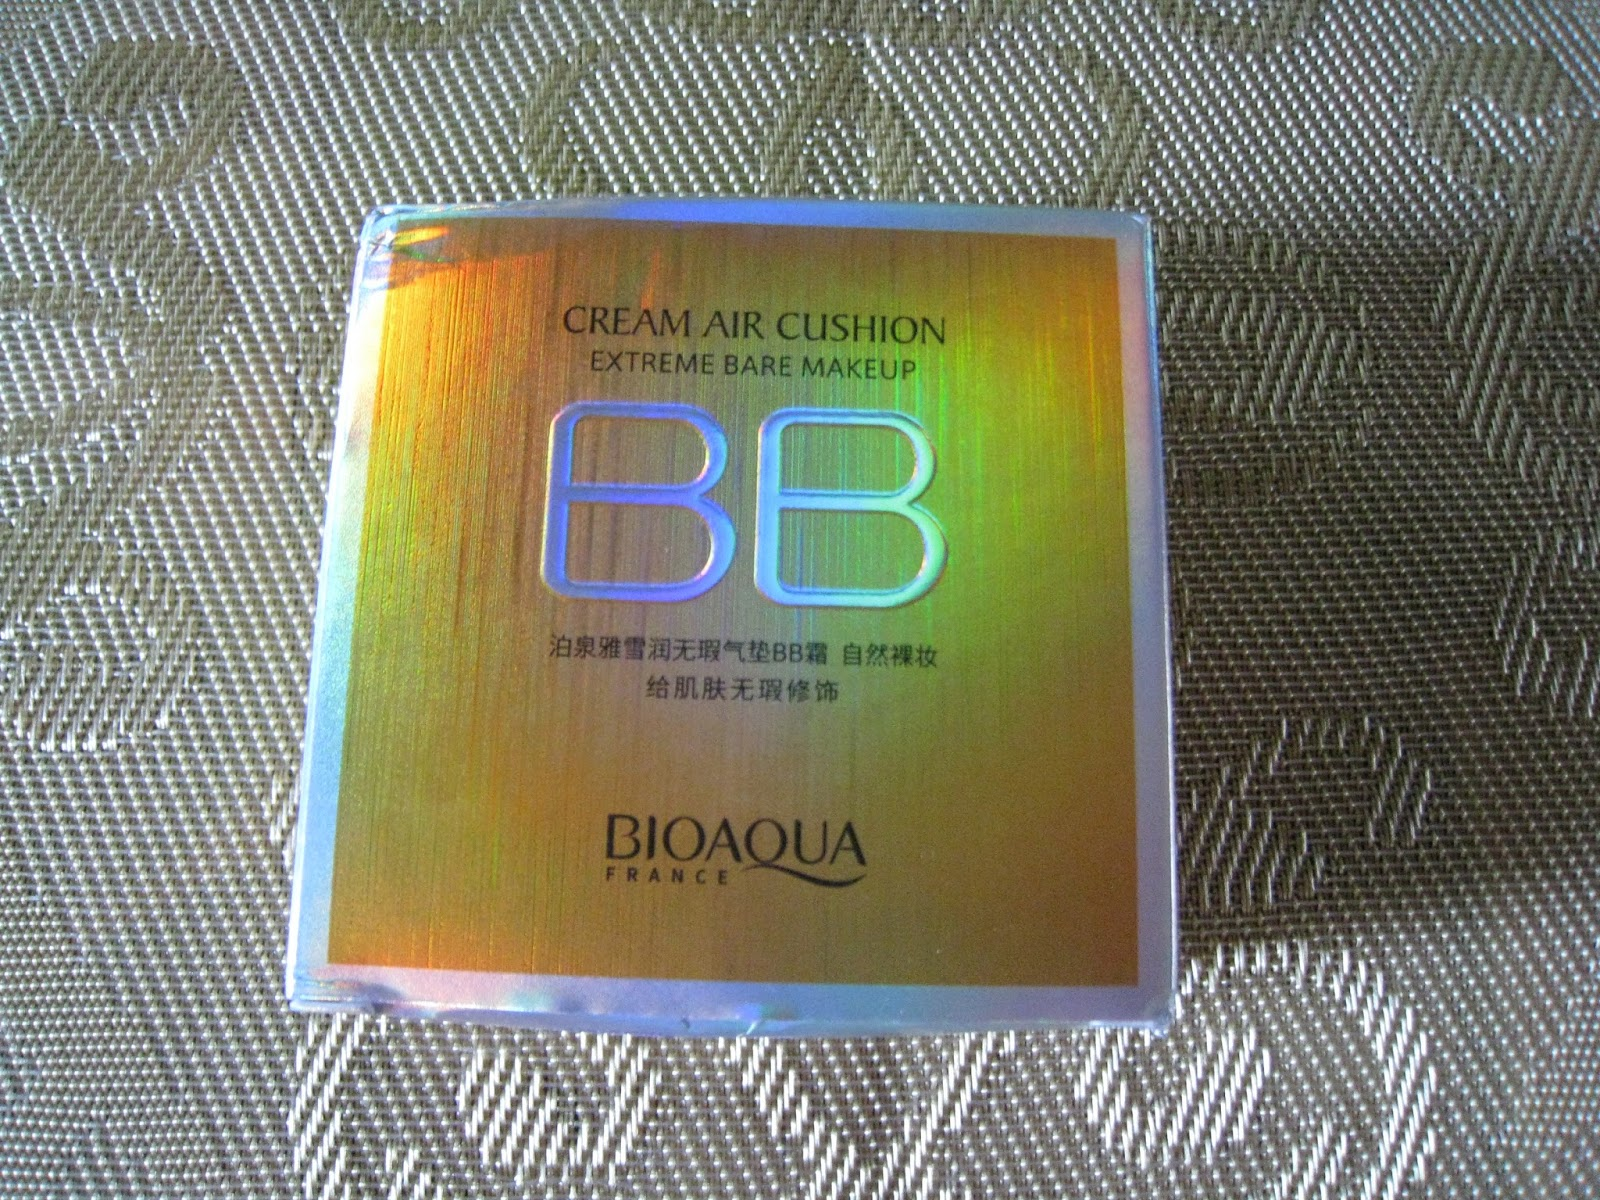 Bioaqua Air Cushion Bb Cream Moisturizing Makeup Review By Elgr Nail Natural Colour 01 Box Orange 15g Which Is An Average Size Its Weight 95g Really Light Compared To Some Other Ones That I Have